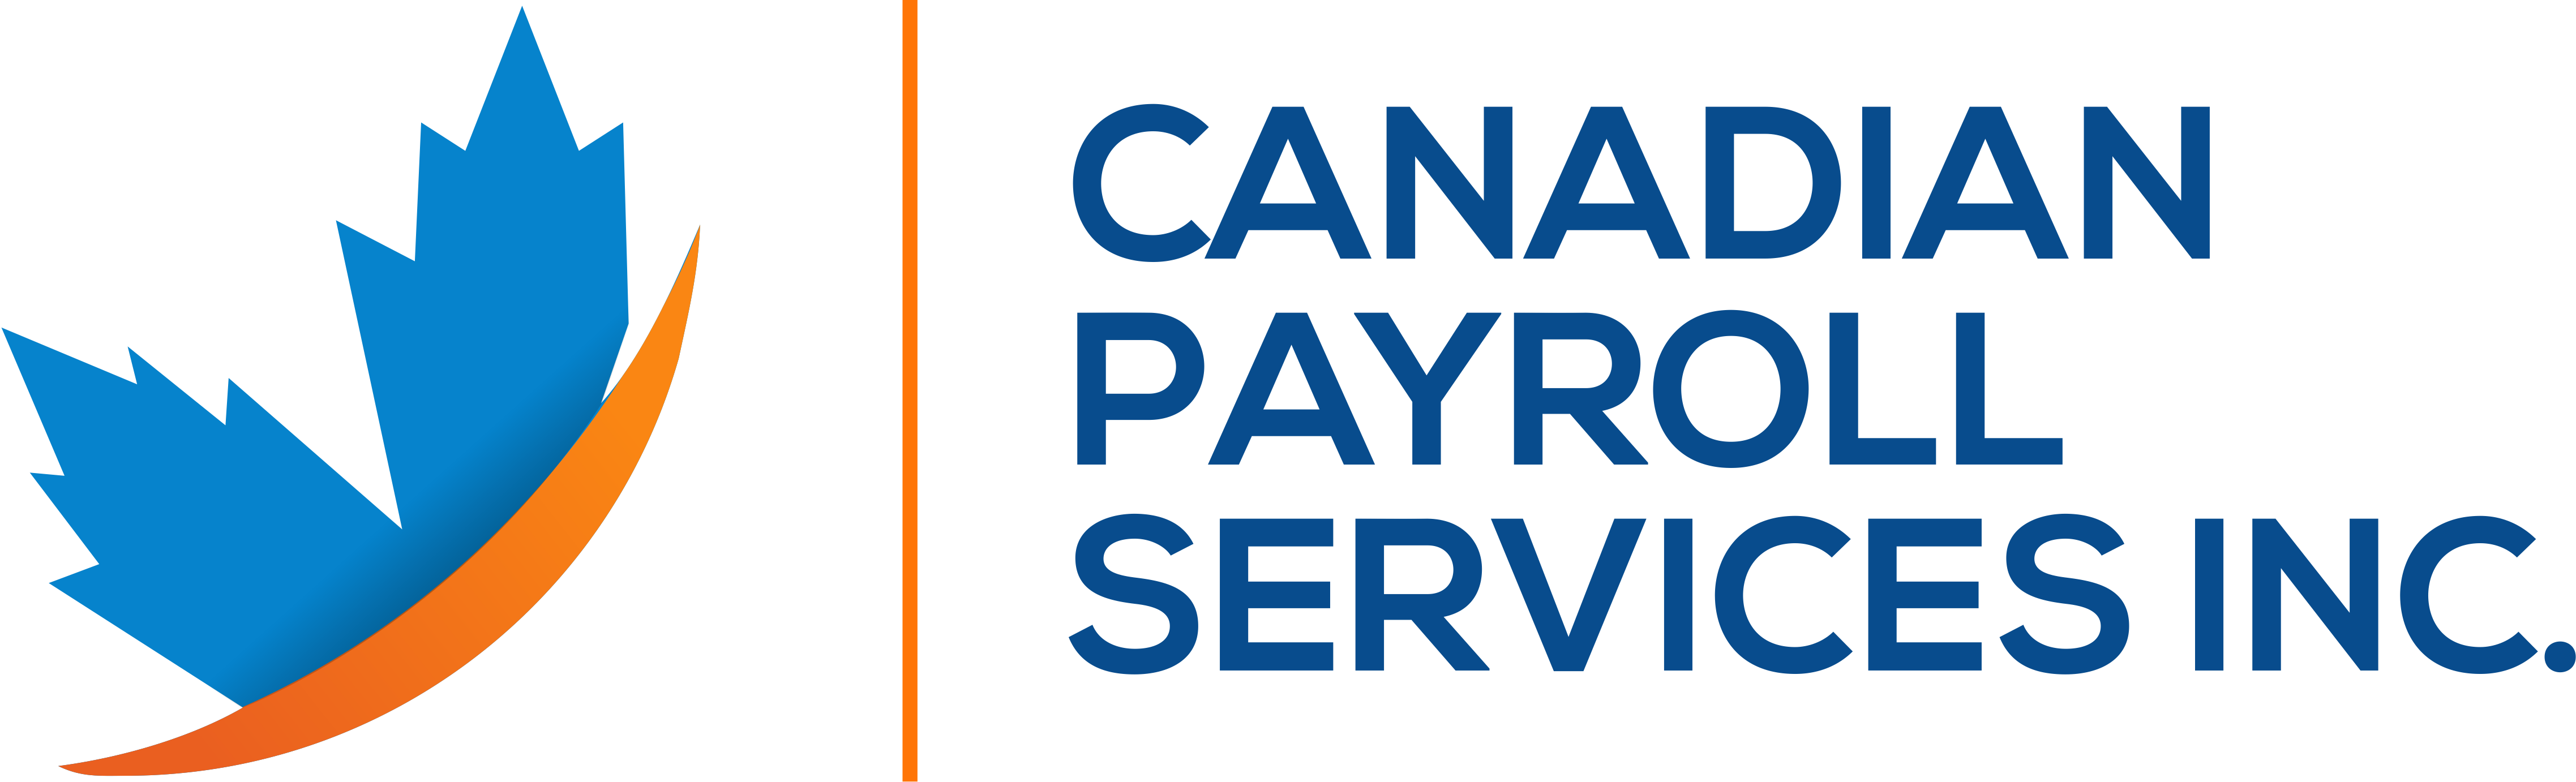 Canadian Payroll Services